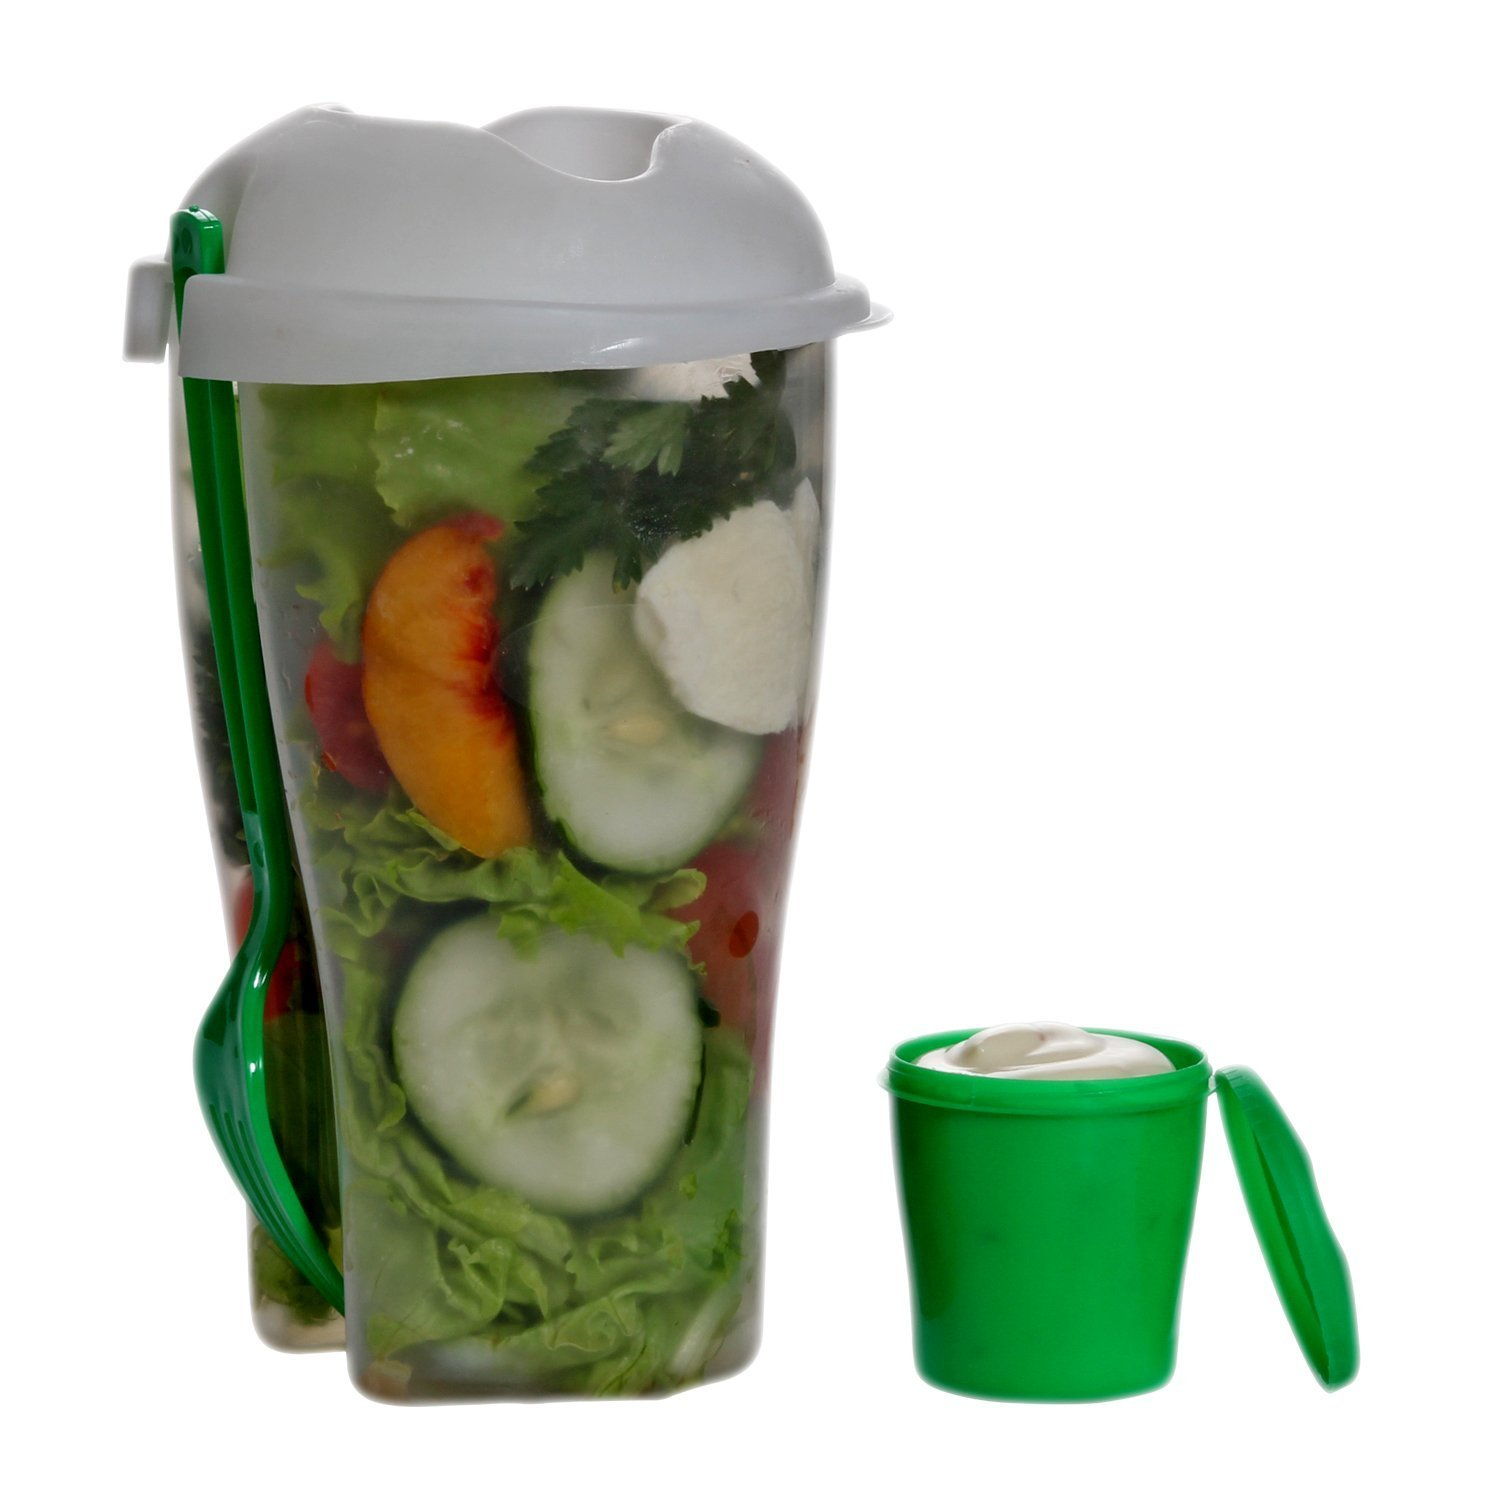 Fresh Salad Container Serving Cup Shaker With Dressing Container Fork Food  Storage Bonus Recipes, Use This Bowl For Picnic, Lunch To Go, Made With  High ...